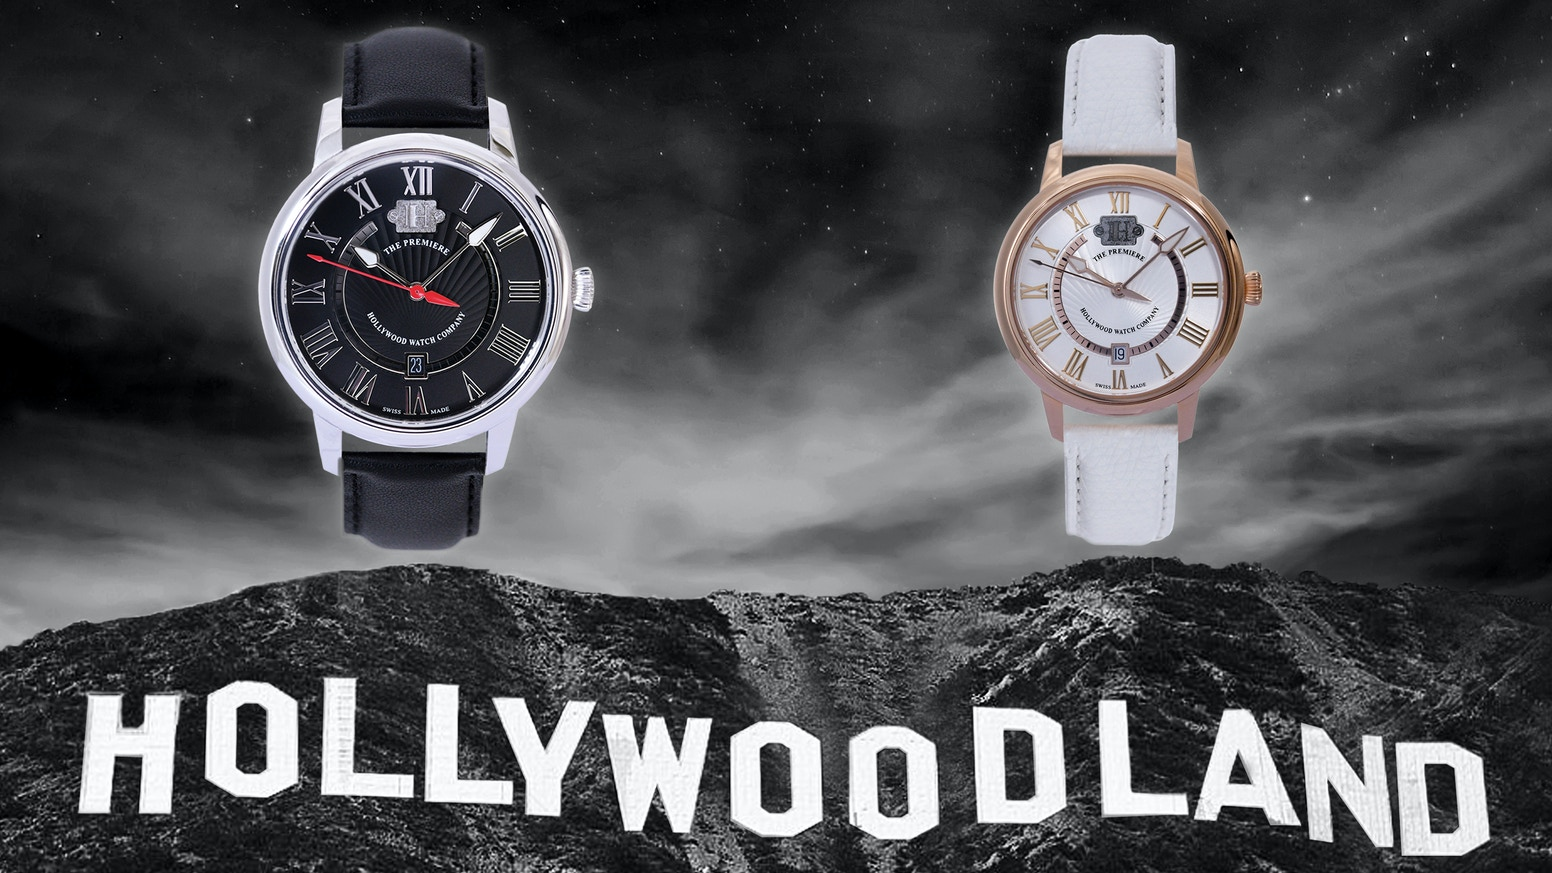 The Premiere: Limited-edition luxury Swiss-made watches, with metal from the original Hollywood Sign from 1923. Own a piece of history.